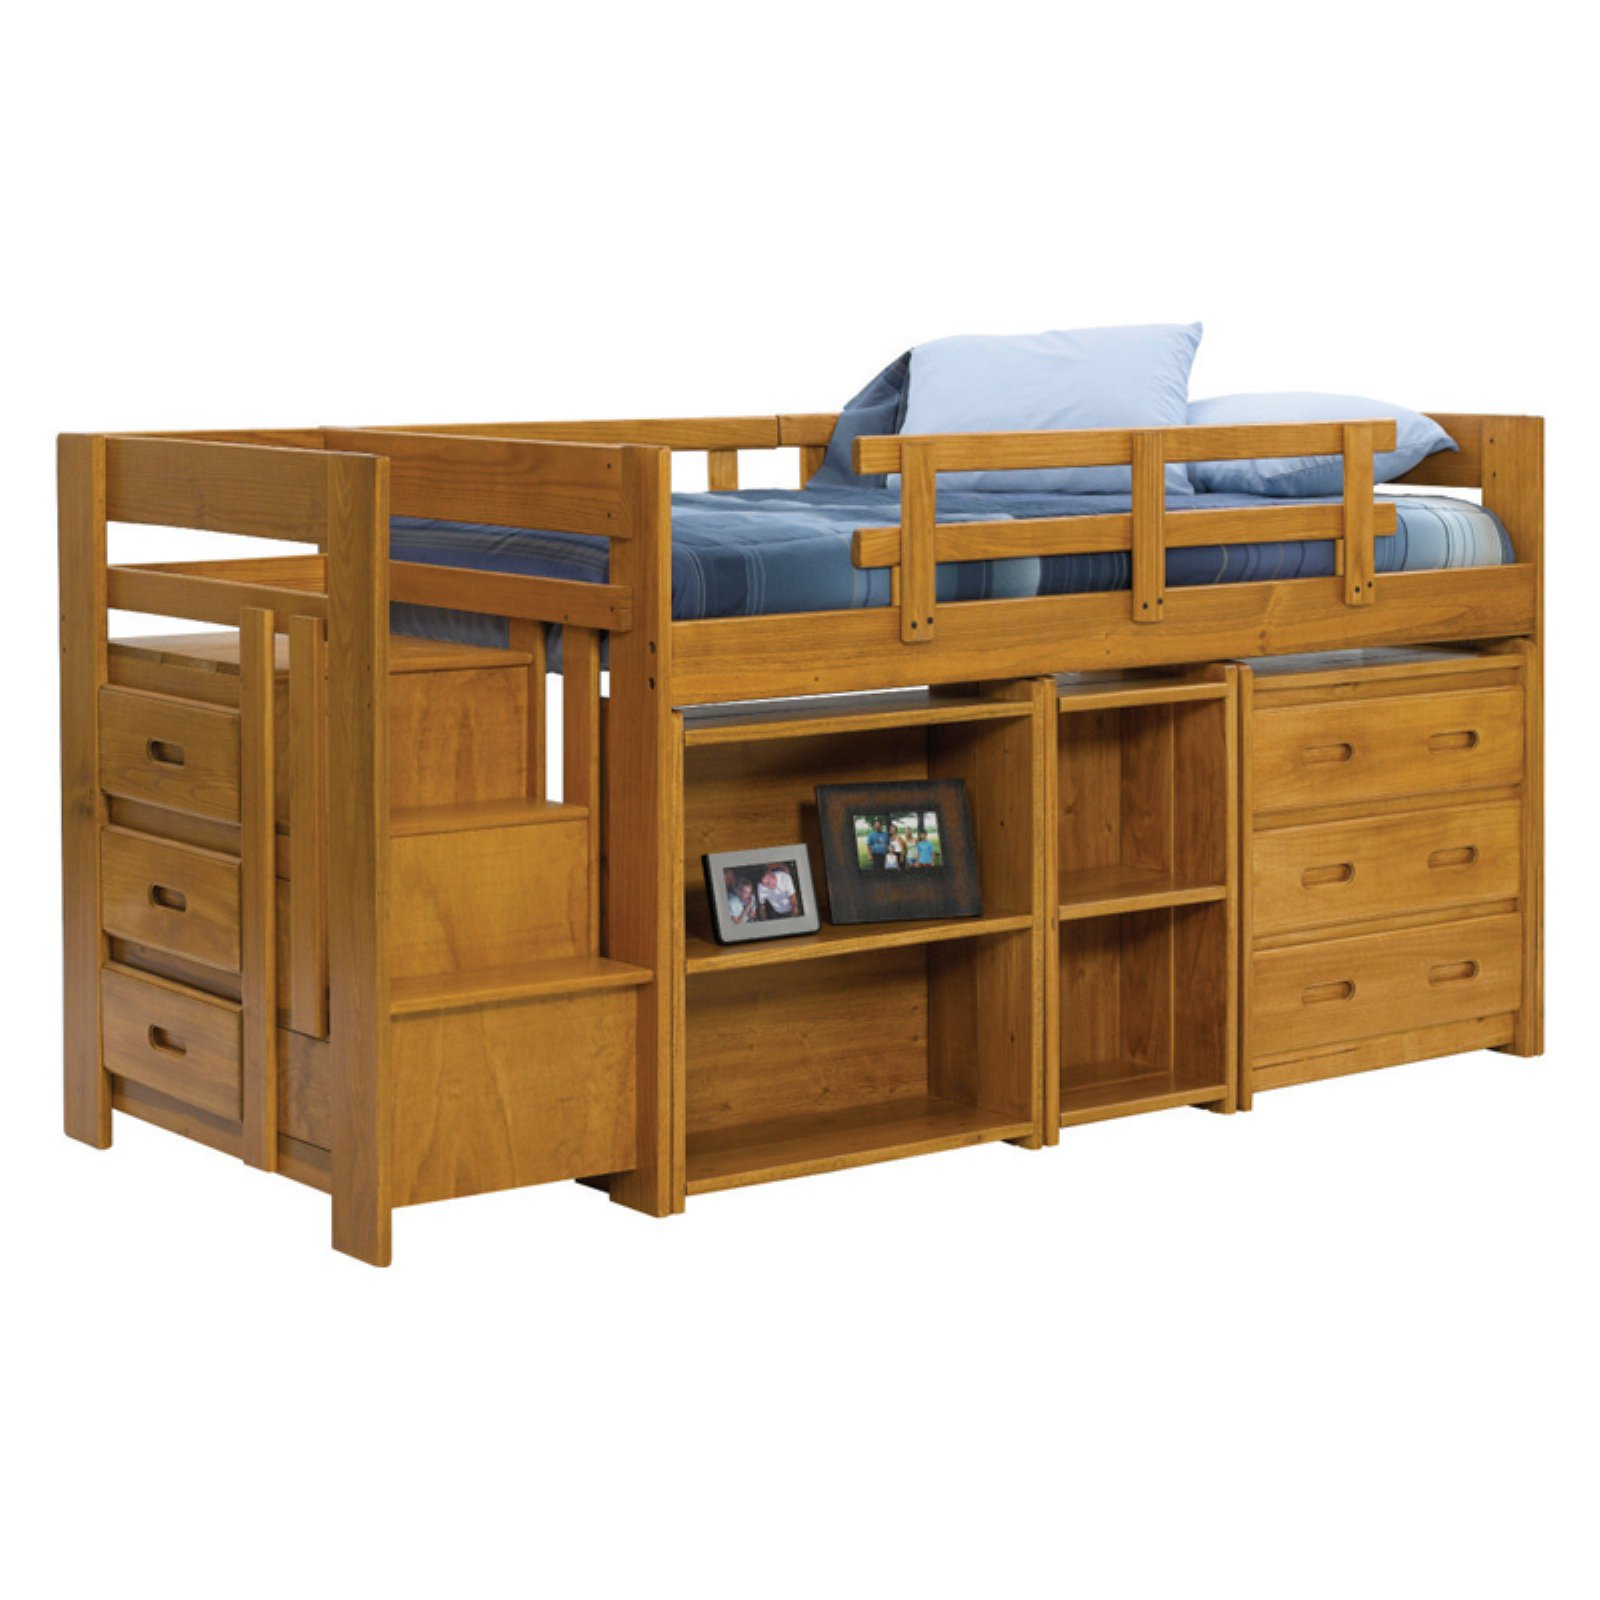 Woodcrest Heartland Mini Stair Loft Bed